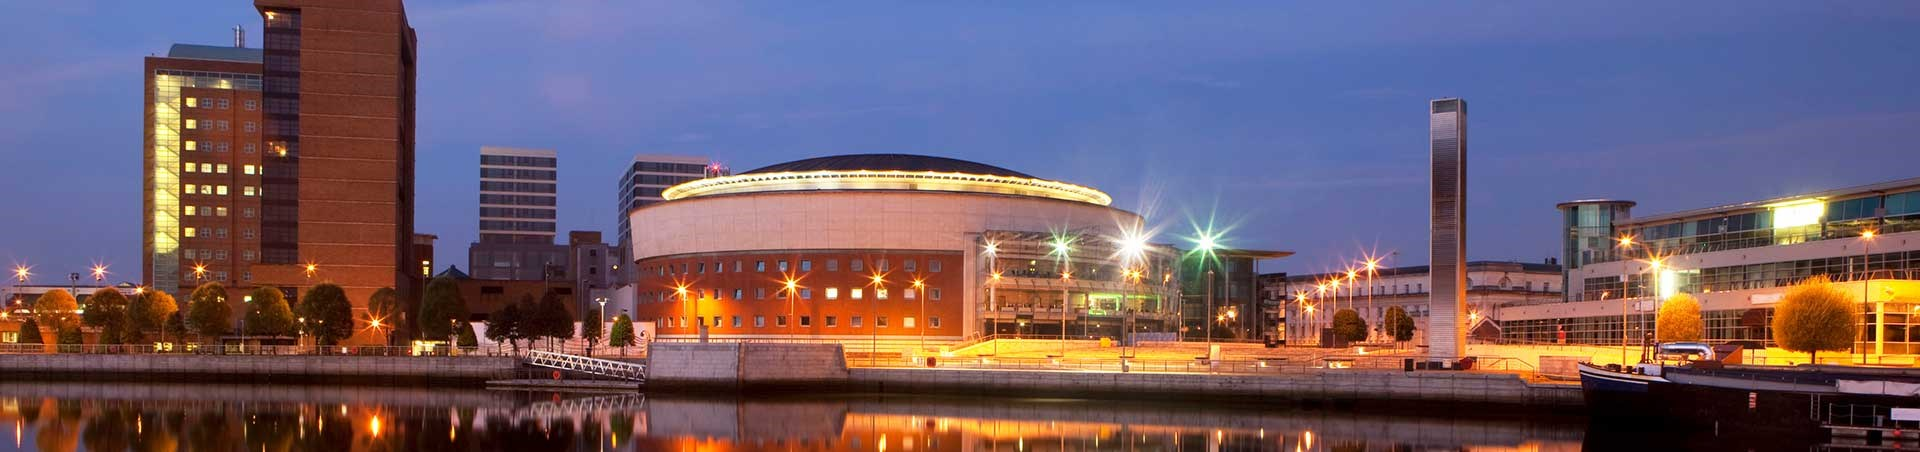 Waterfront Hall, Belfast, Northern Ireland